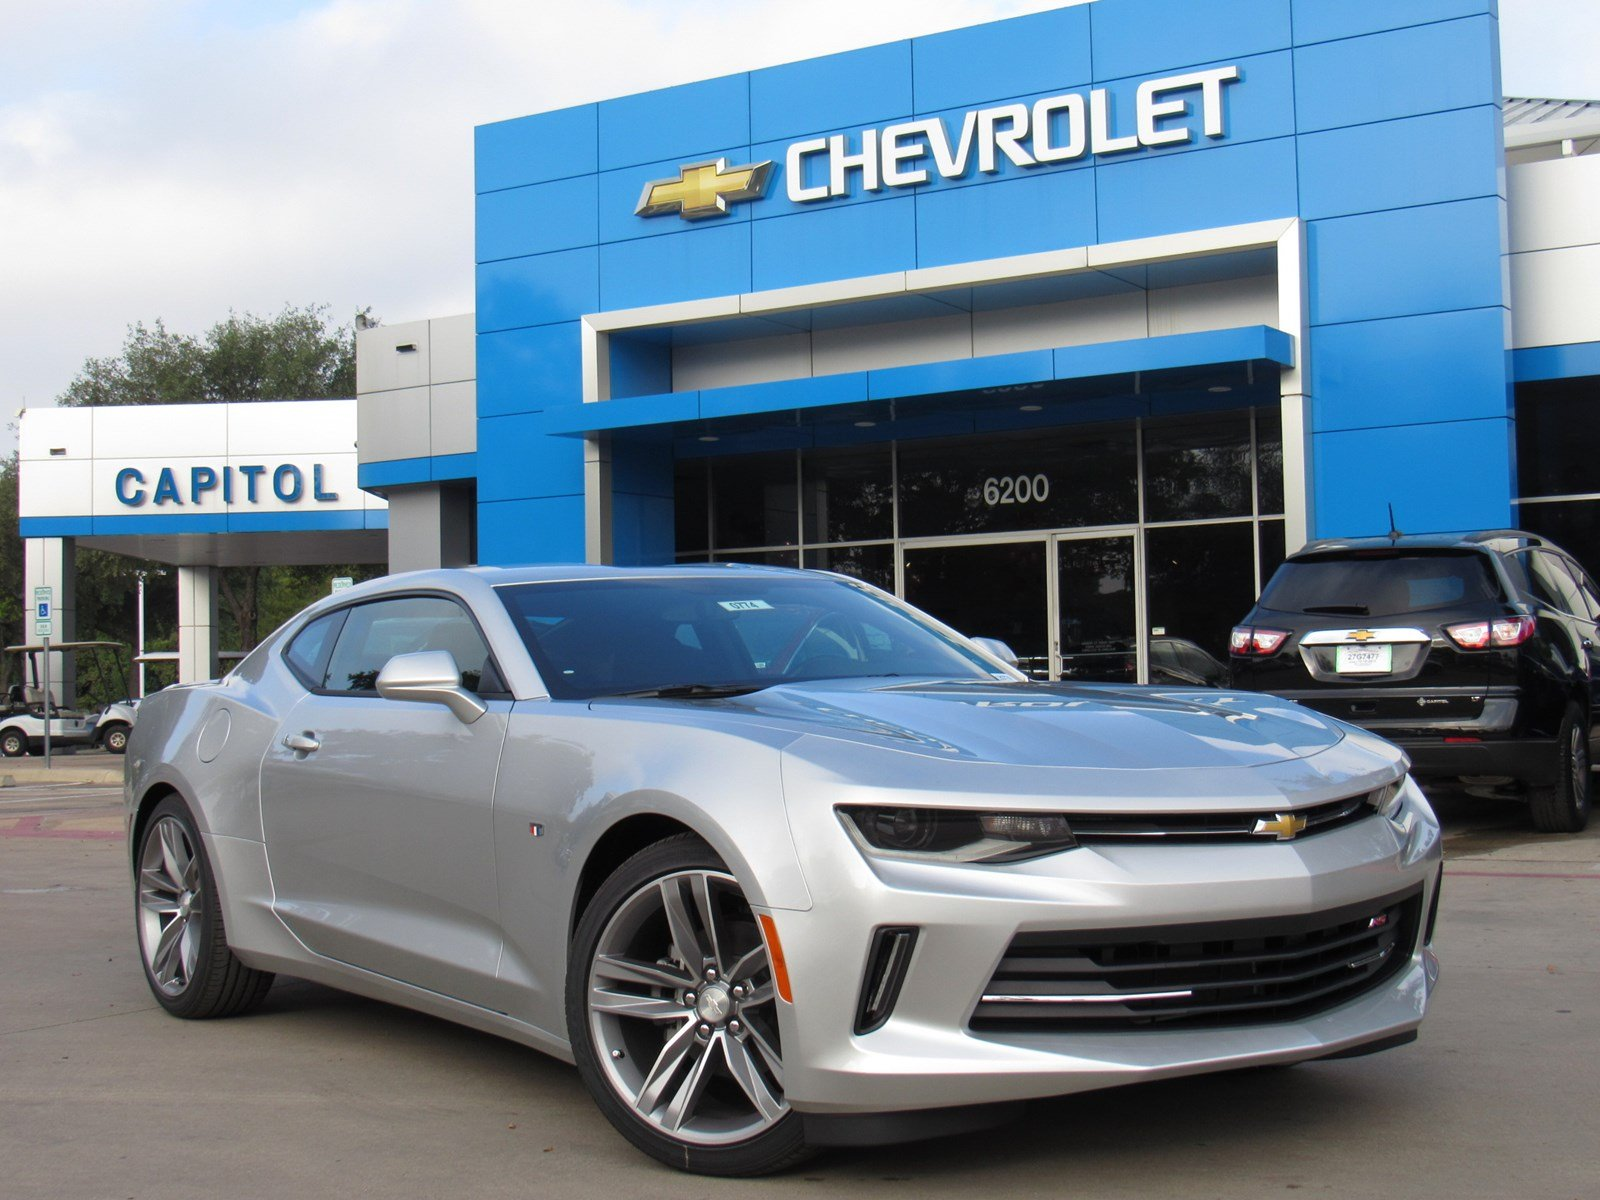 2018 chevrolet camaro. plain chevrolet new 2018 chevrolet camaro lt and chevrolet camaro